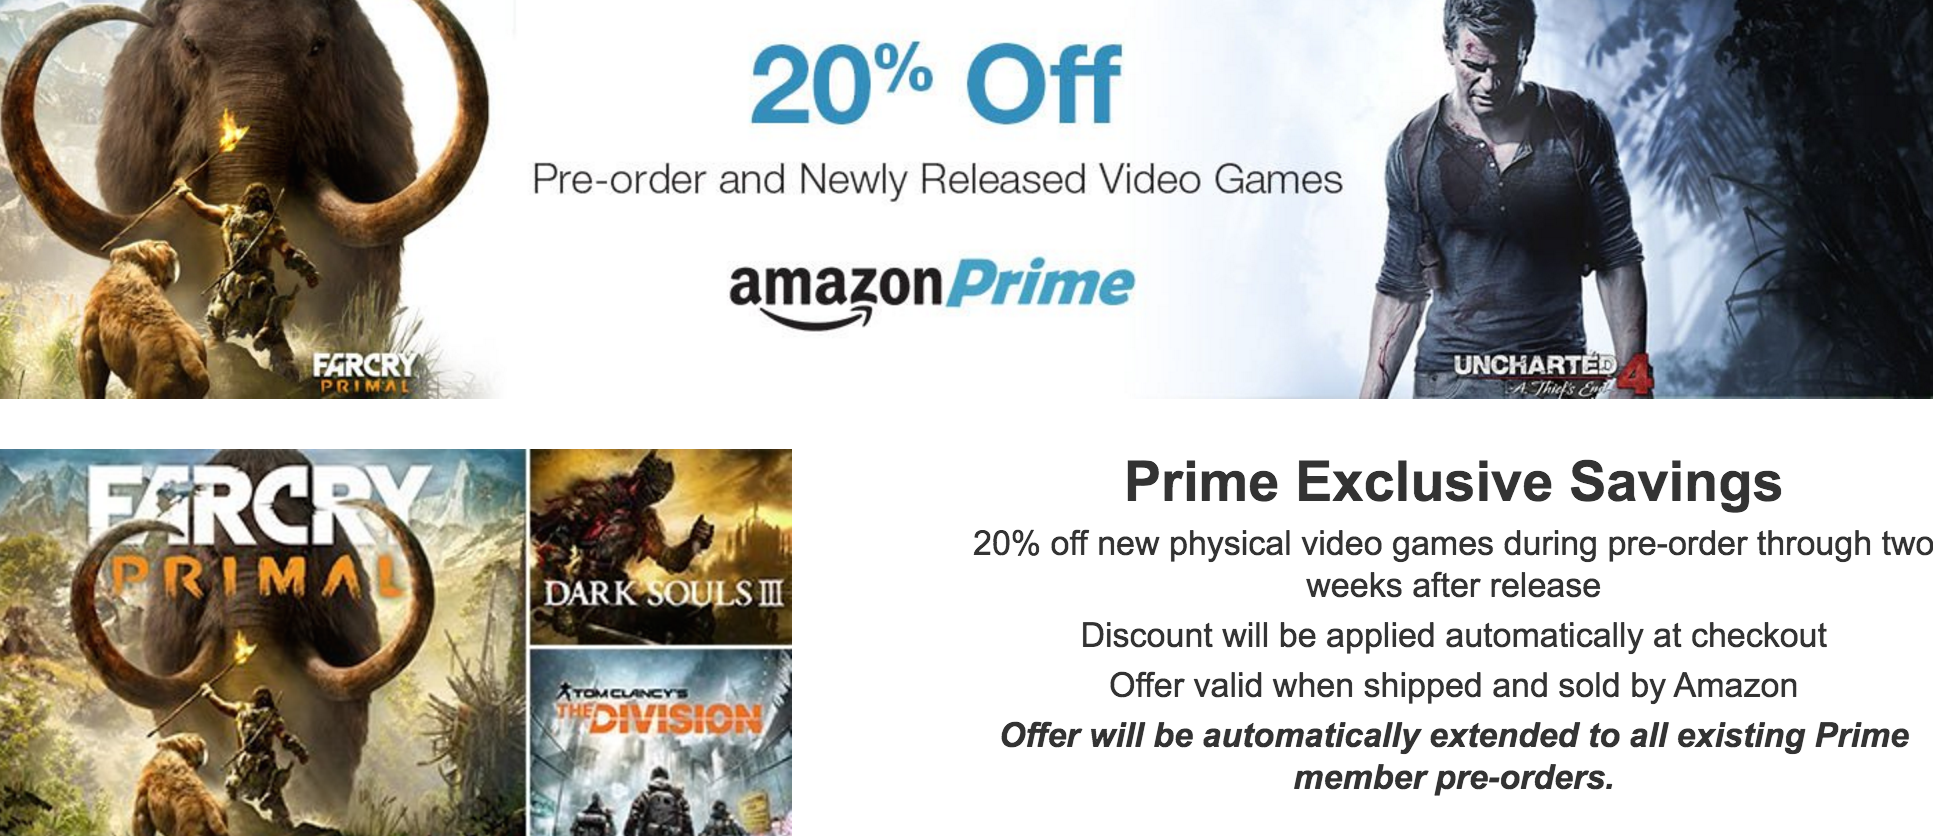 ef048ee62aa Amazon Prime Adds 20% Discount On Video Game Pre-Orders   New Releases